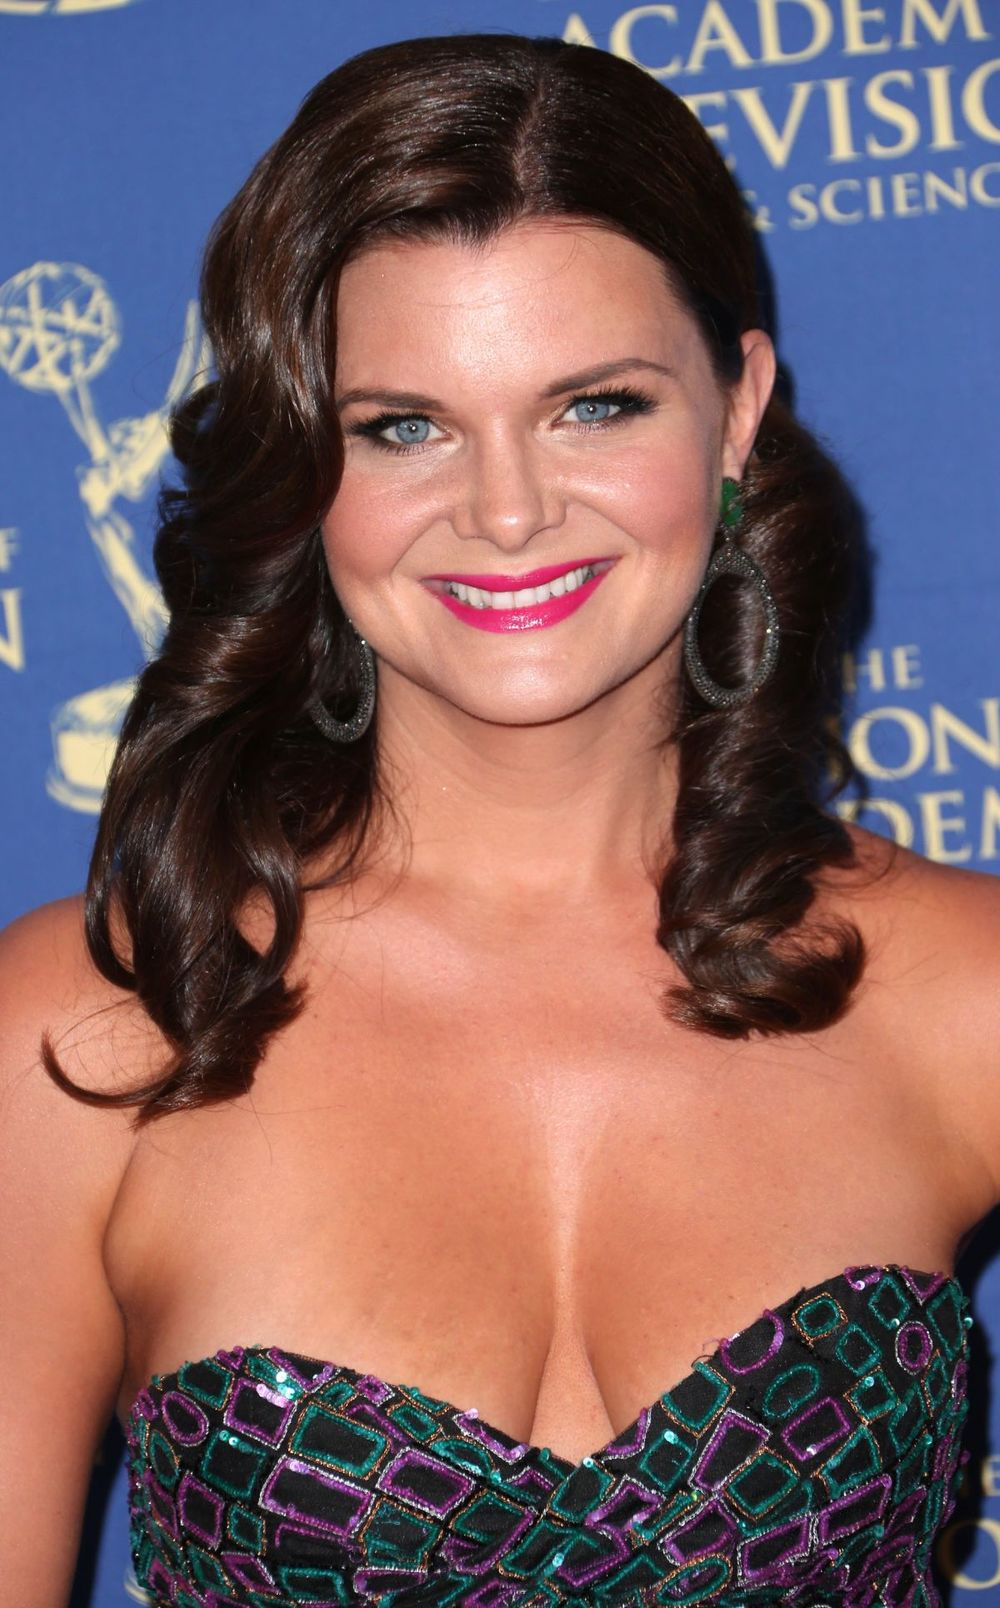 heather-tom-at-daytime-creative-arts-emmy-awards-in-los-angeles_1.jpg